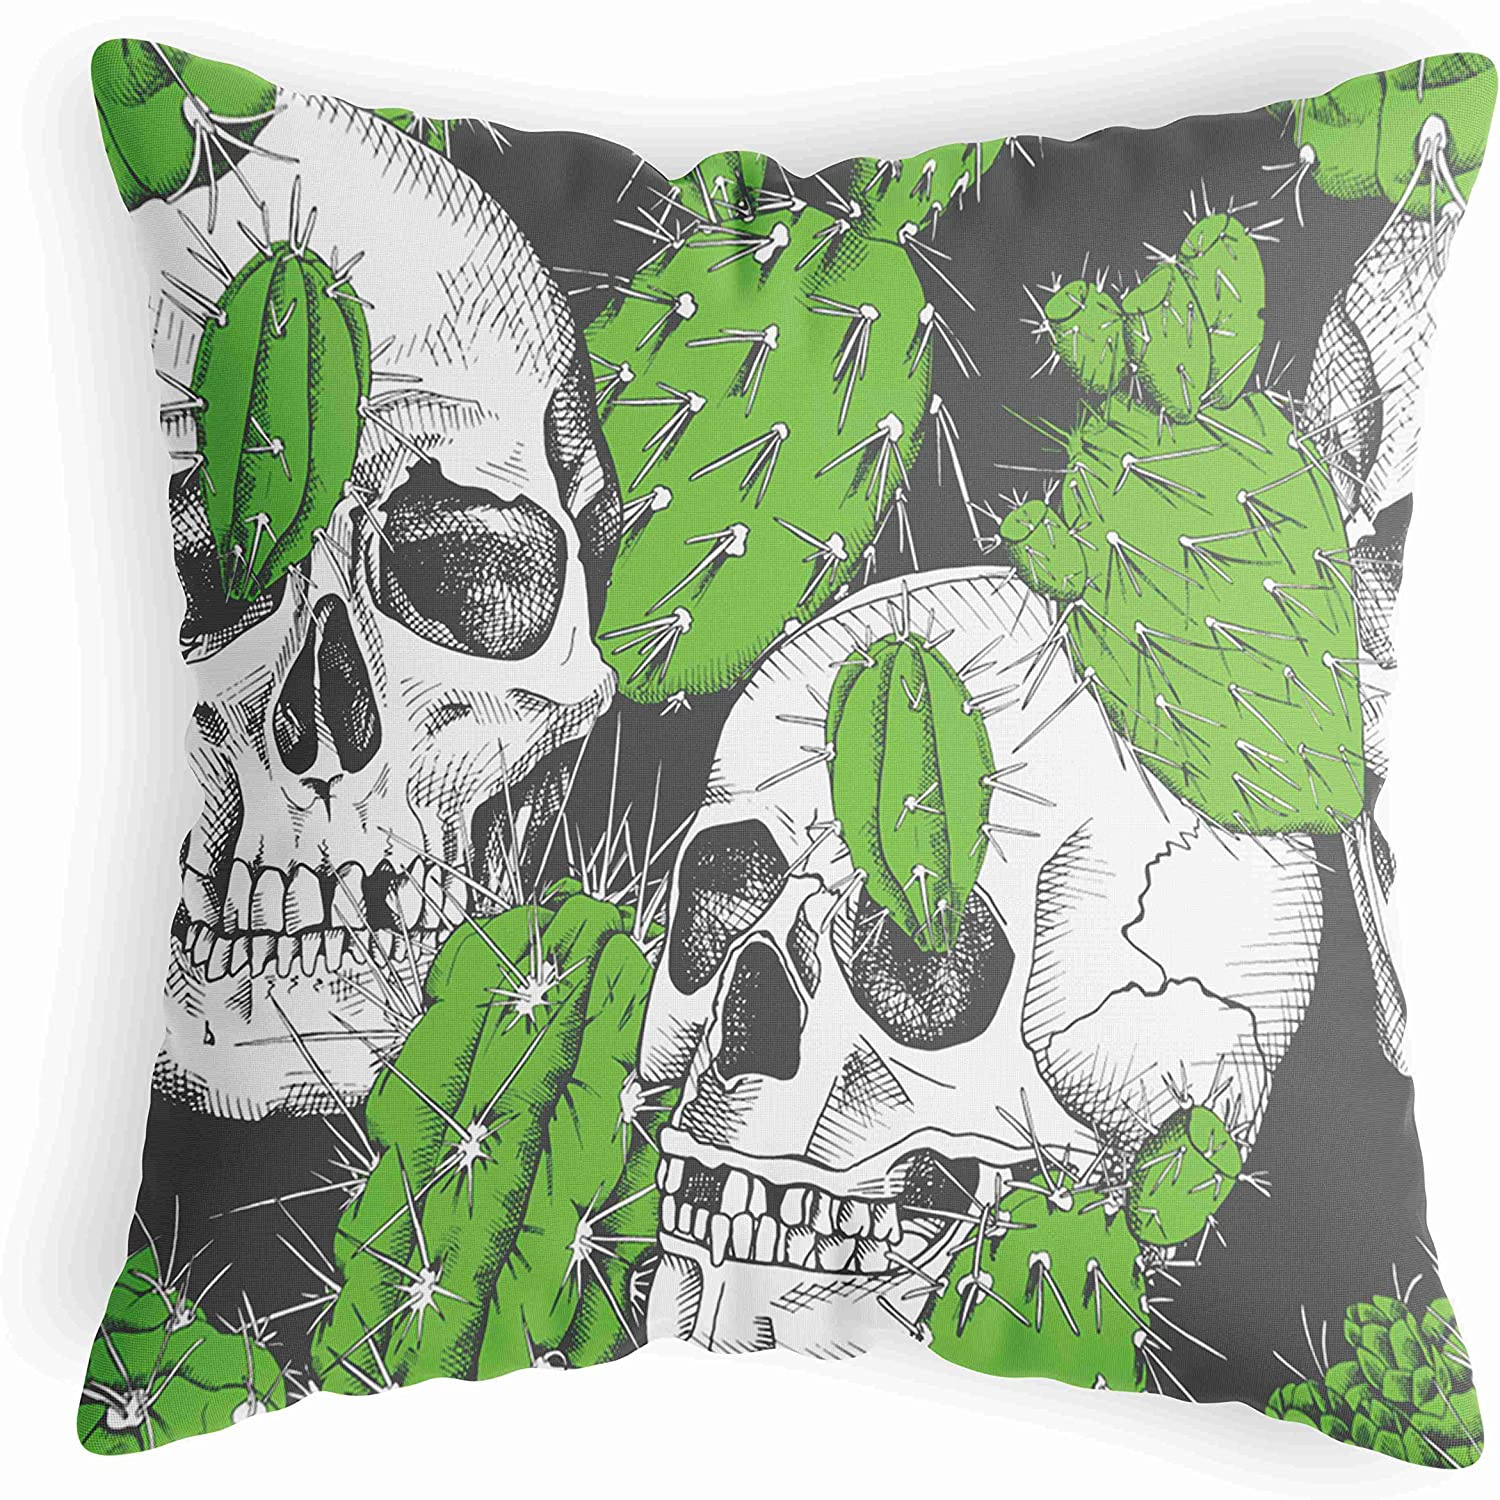 LucaSng Green Throw Pillow Covers 18X18, Tropical Cactus Throw Pillow Covers, Natural Plant Pillow Covers with Black Background for Living Room Bedroom Sofa Couch Car Seat Decor, White Black